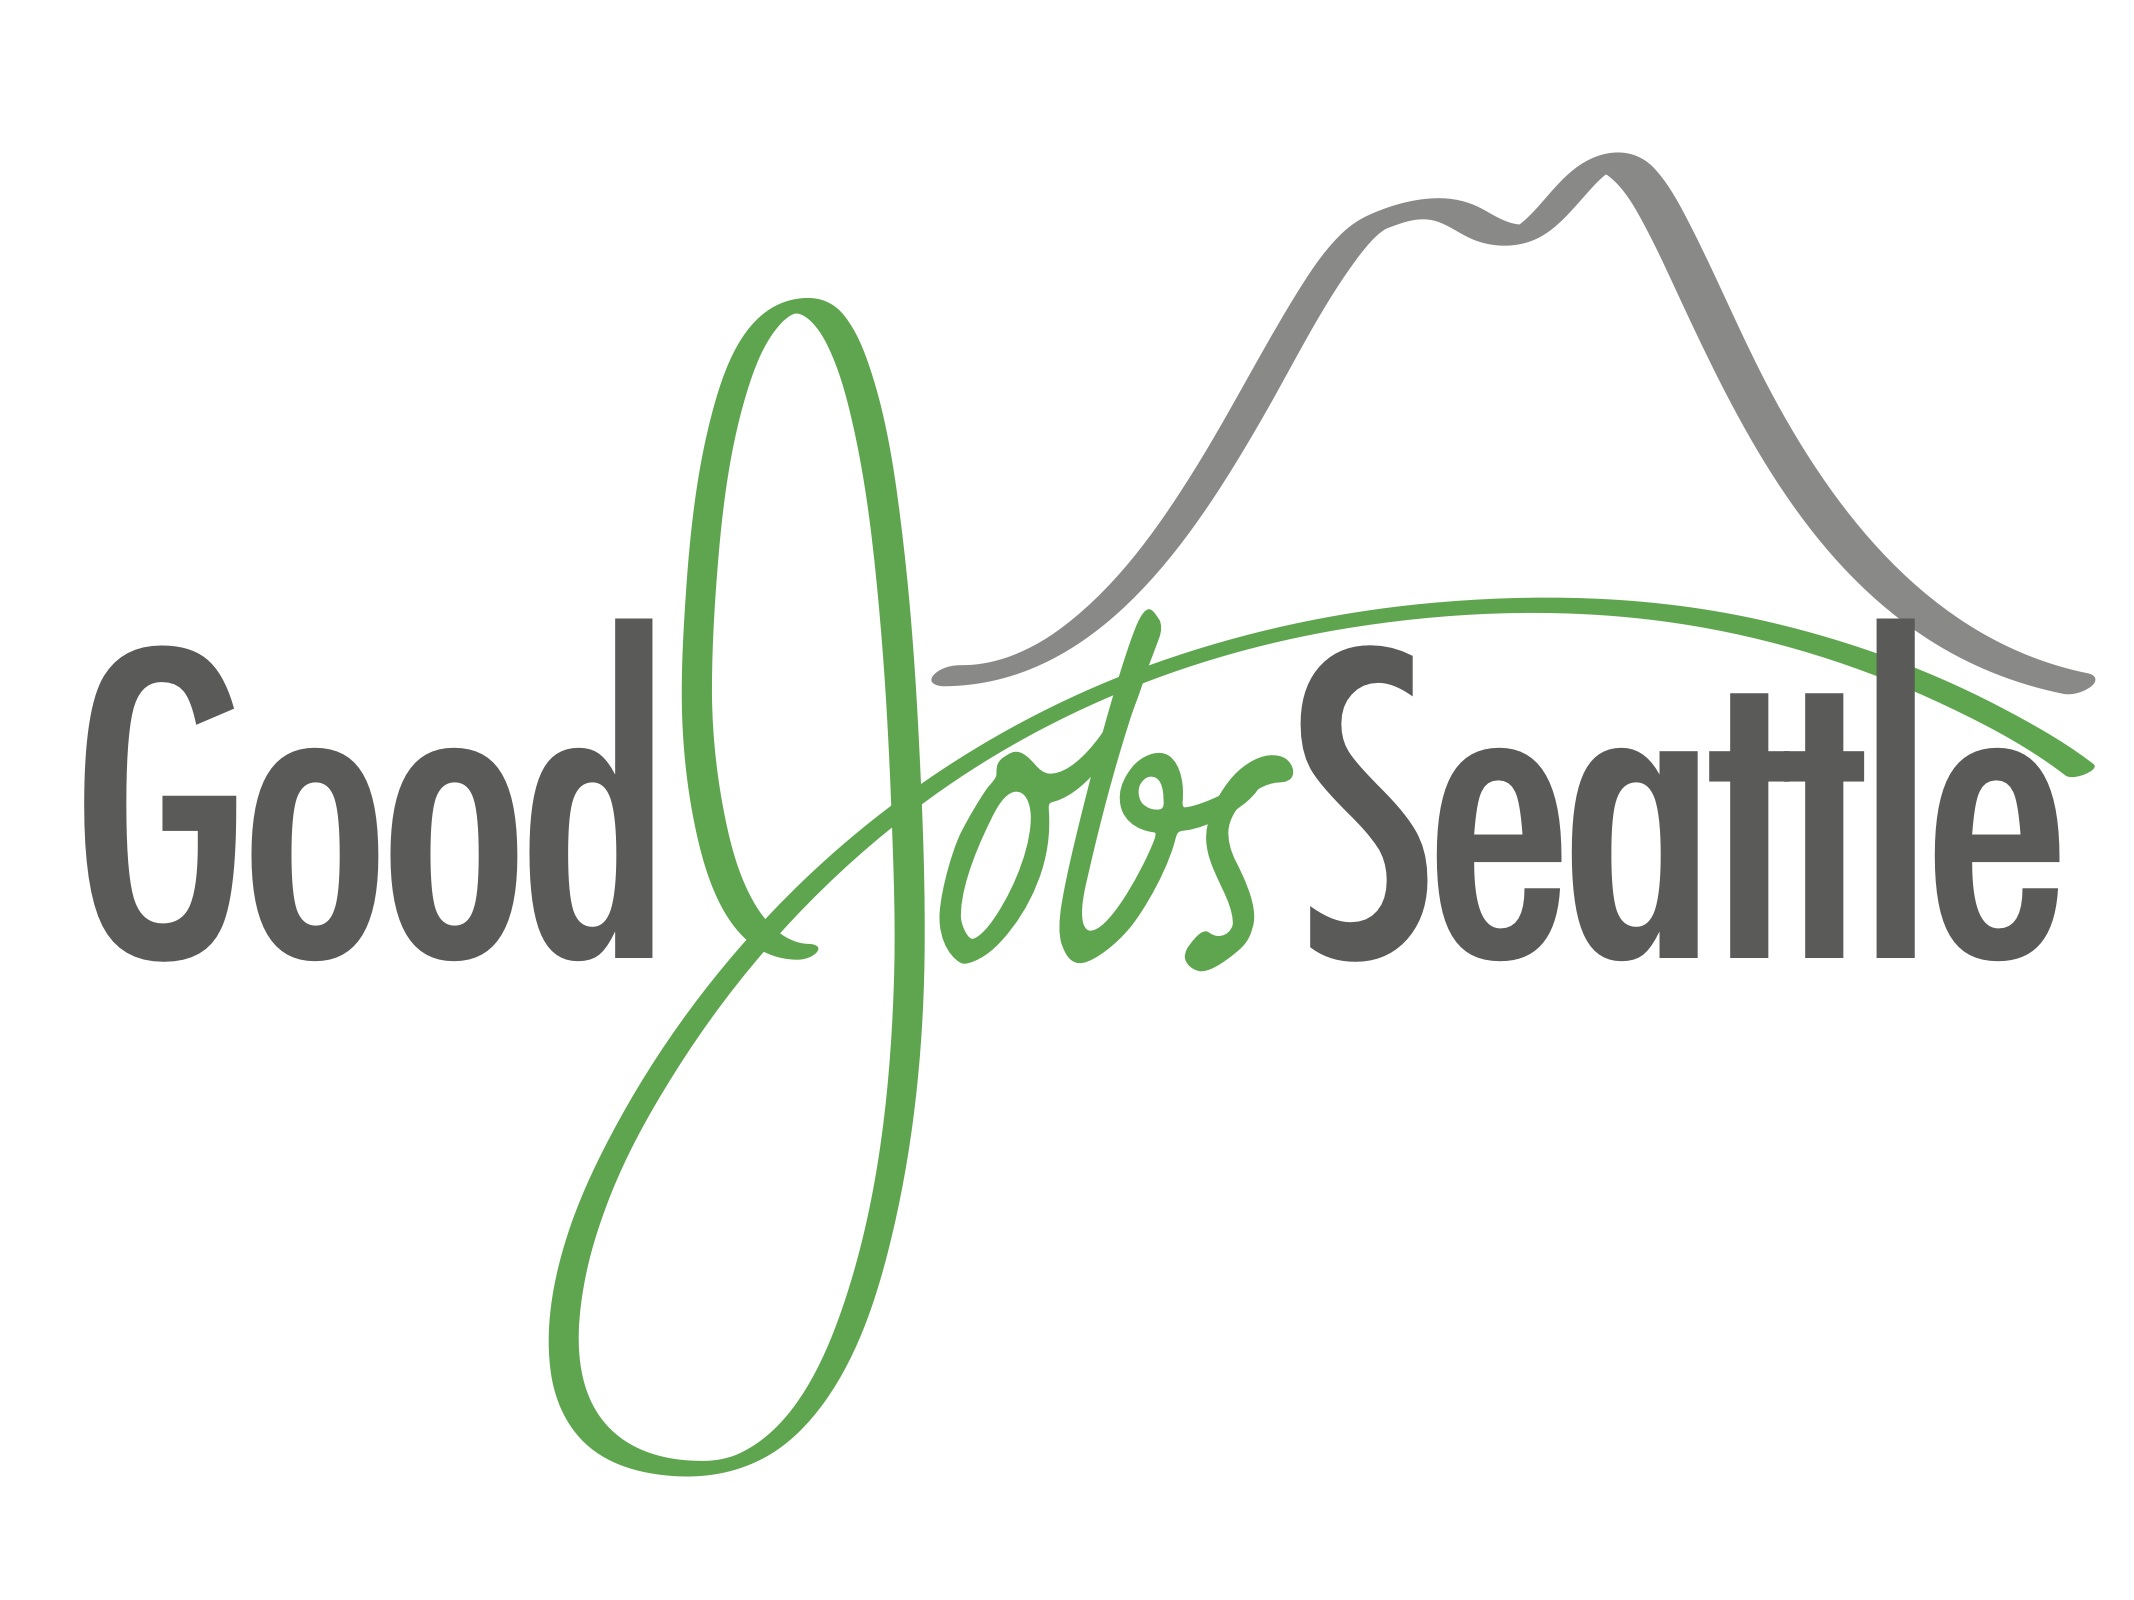 Good Jobs Seattle